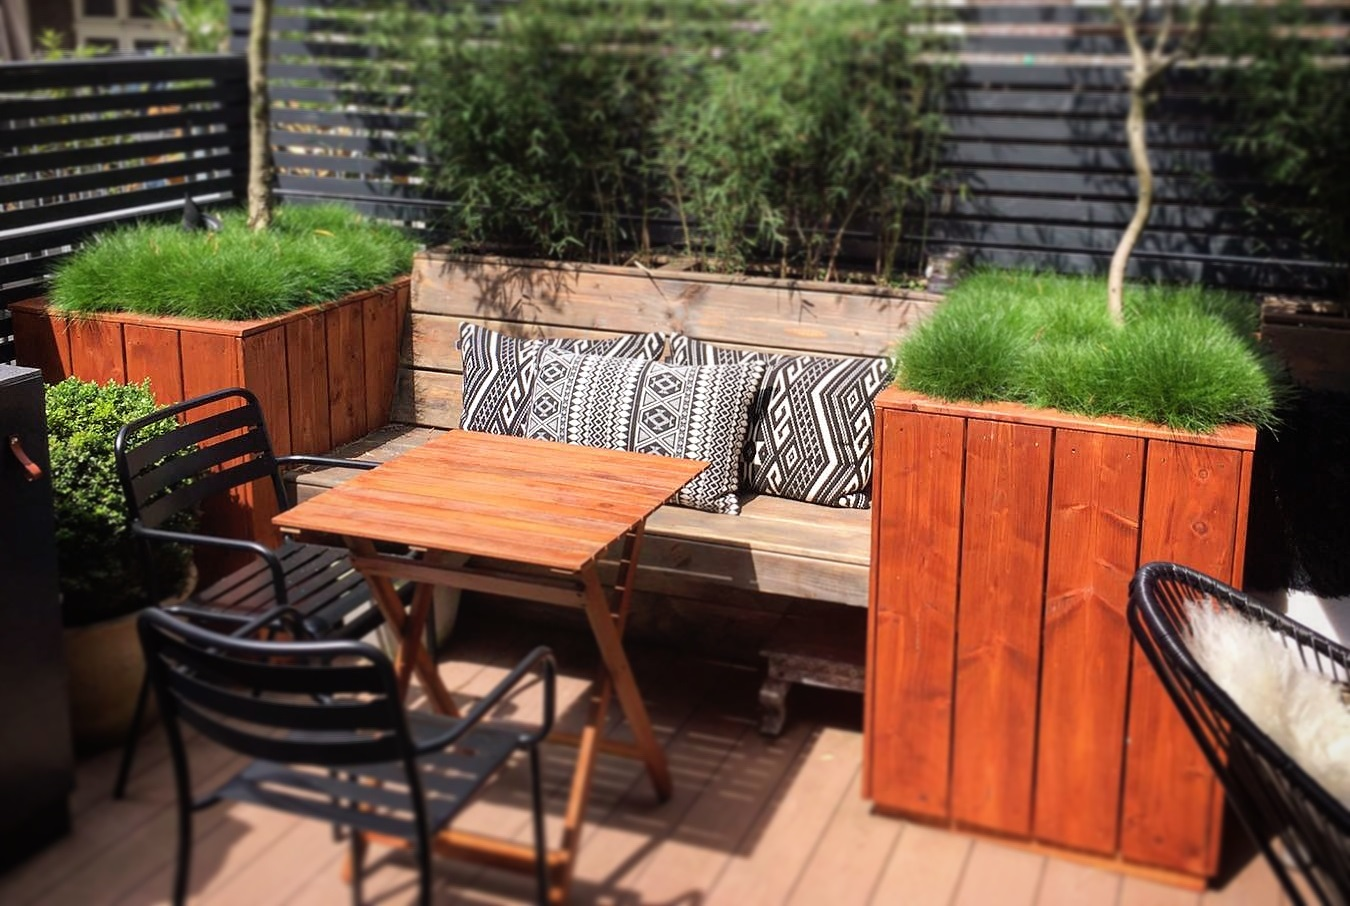 Loungeset Tuin Hout : Loungebank tuin hout. simple tuin terras with loungebank tuin hout